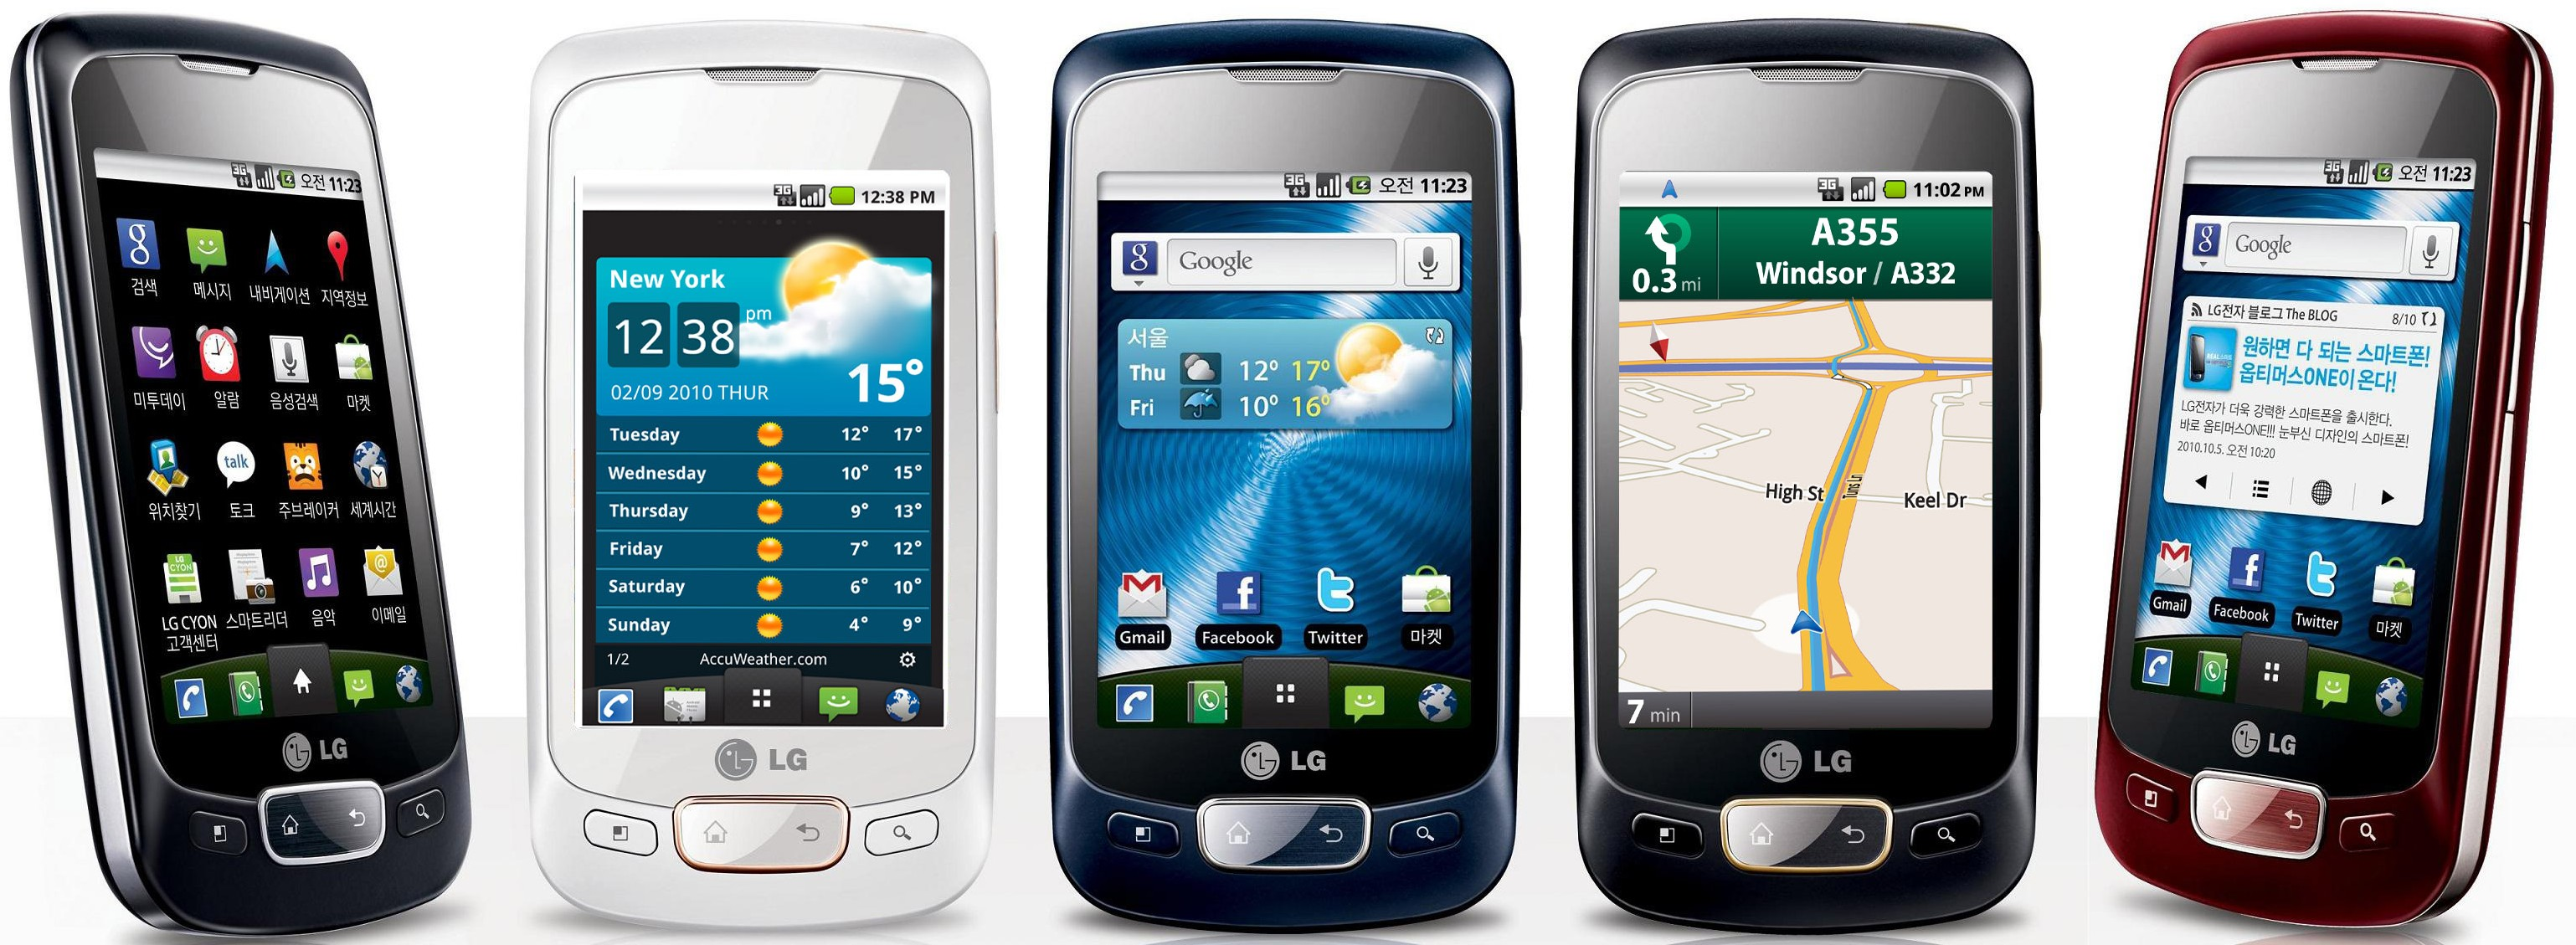 LG P500 Maximo One (Android 2.2)